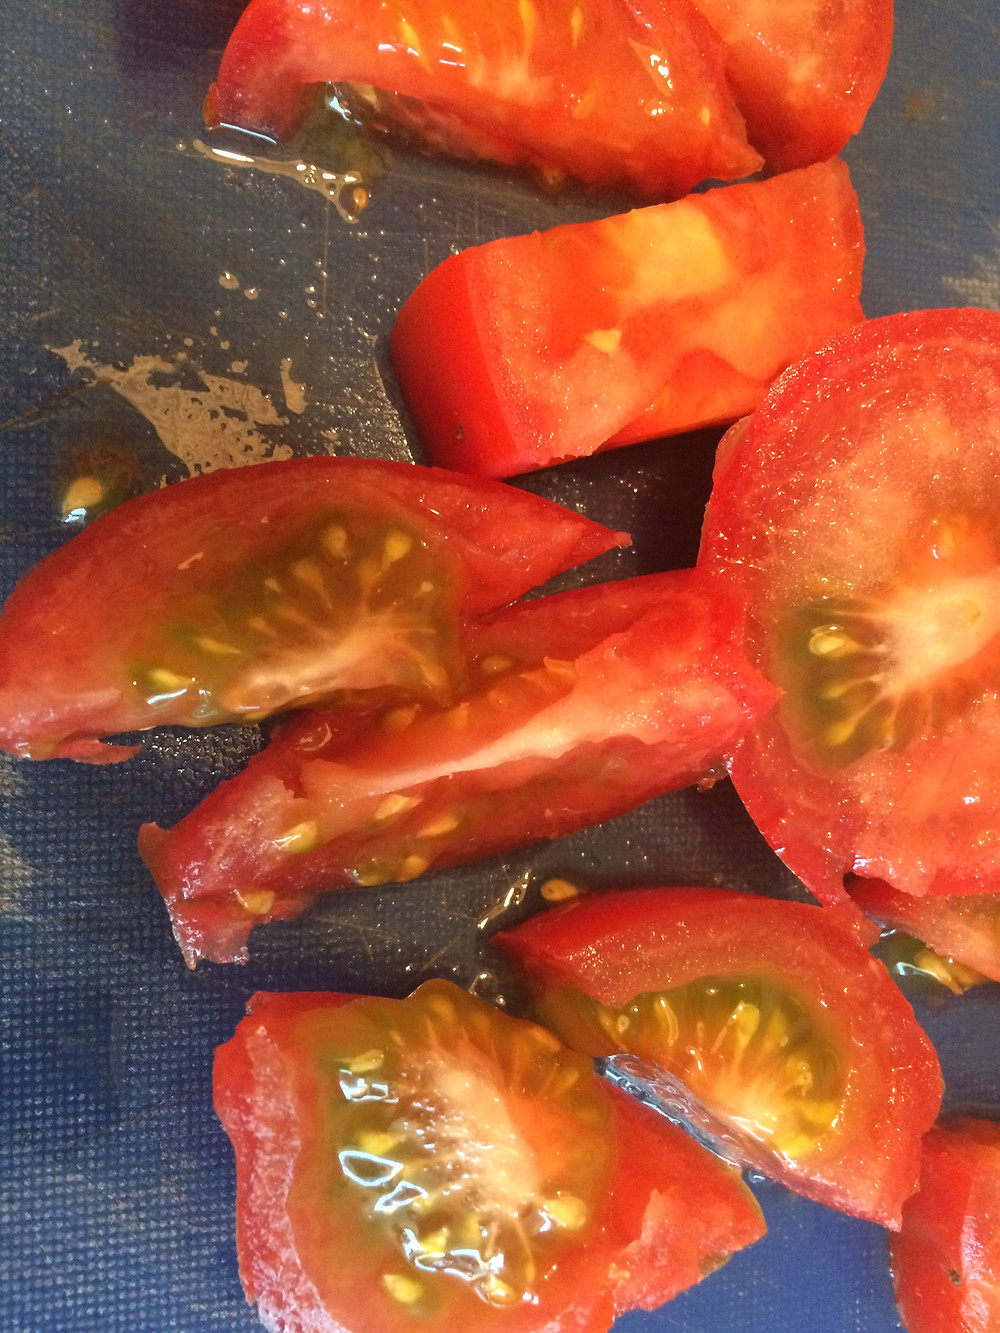 There's a green tinge to the insides of these tomatoes, but that's most likely genetics